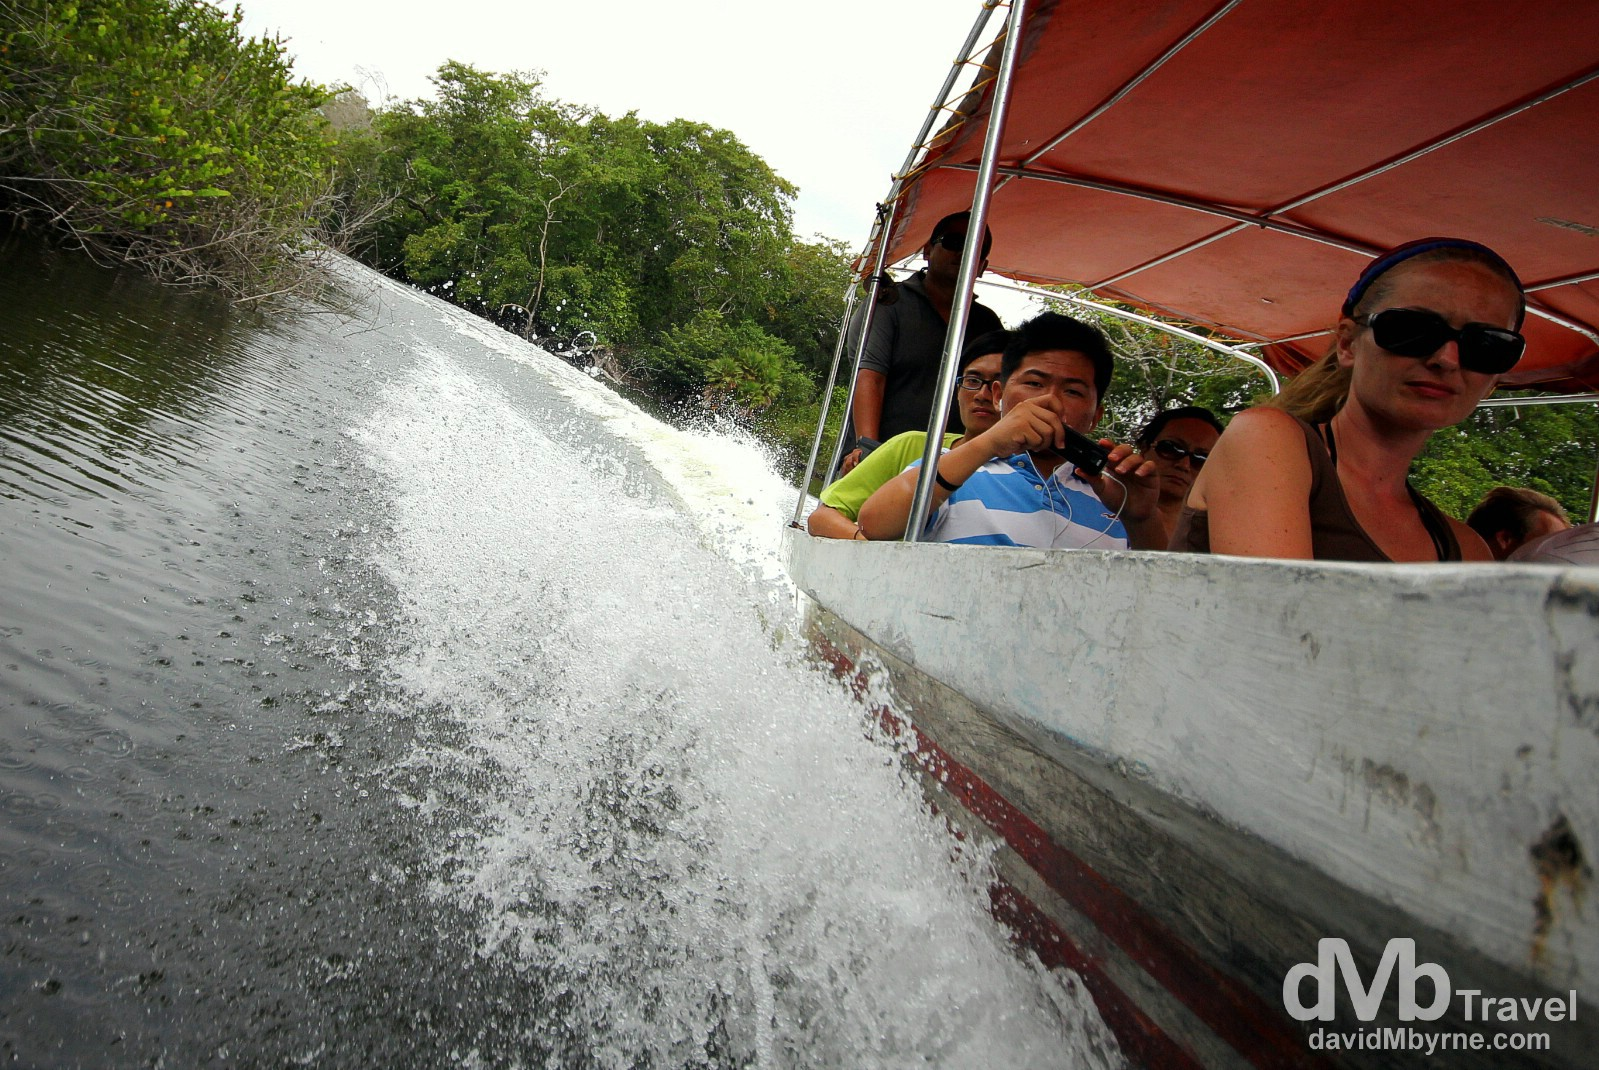 Motor boating on the New River en route from the Lamanai Mayan ruins, Central Belize. May 11th 2013.